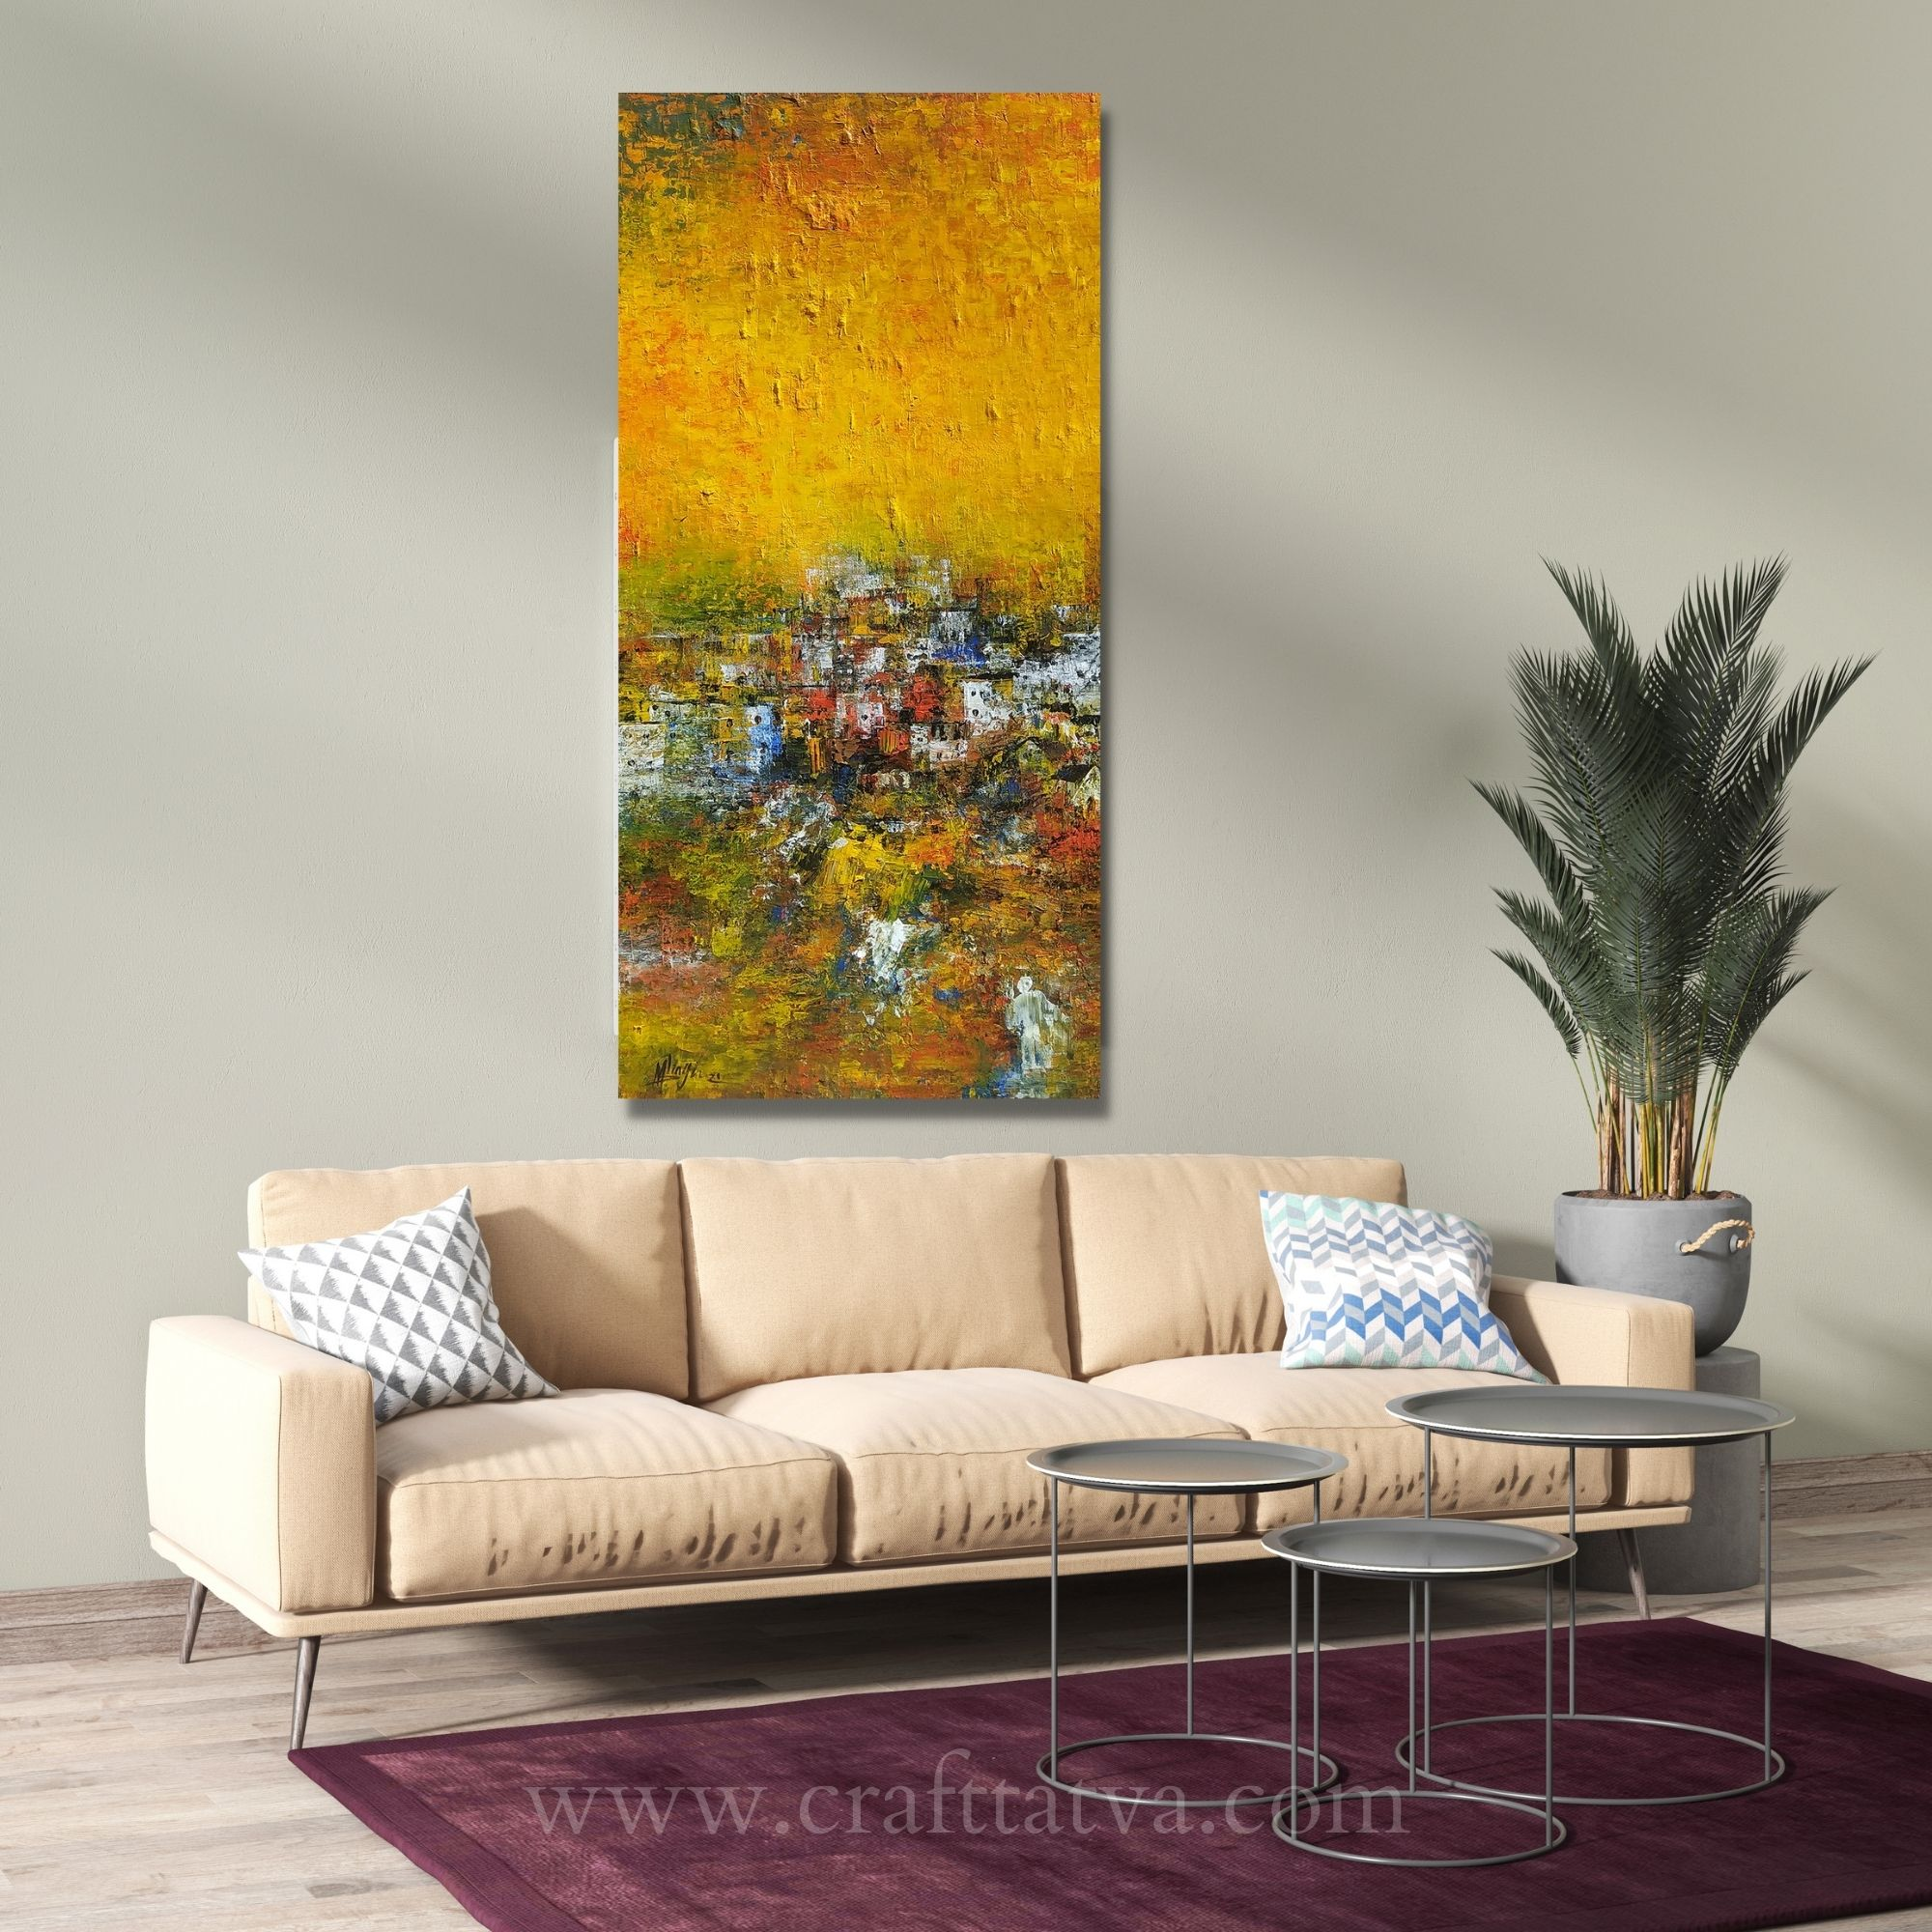 My Home Town 21, Acrylic on Canvas, 30 x 15 in.